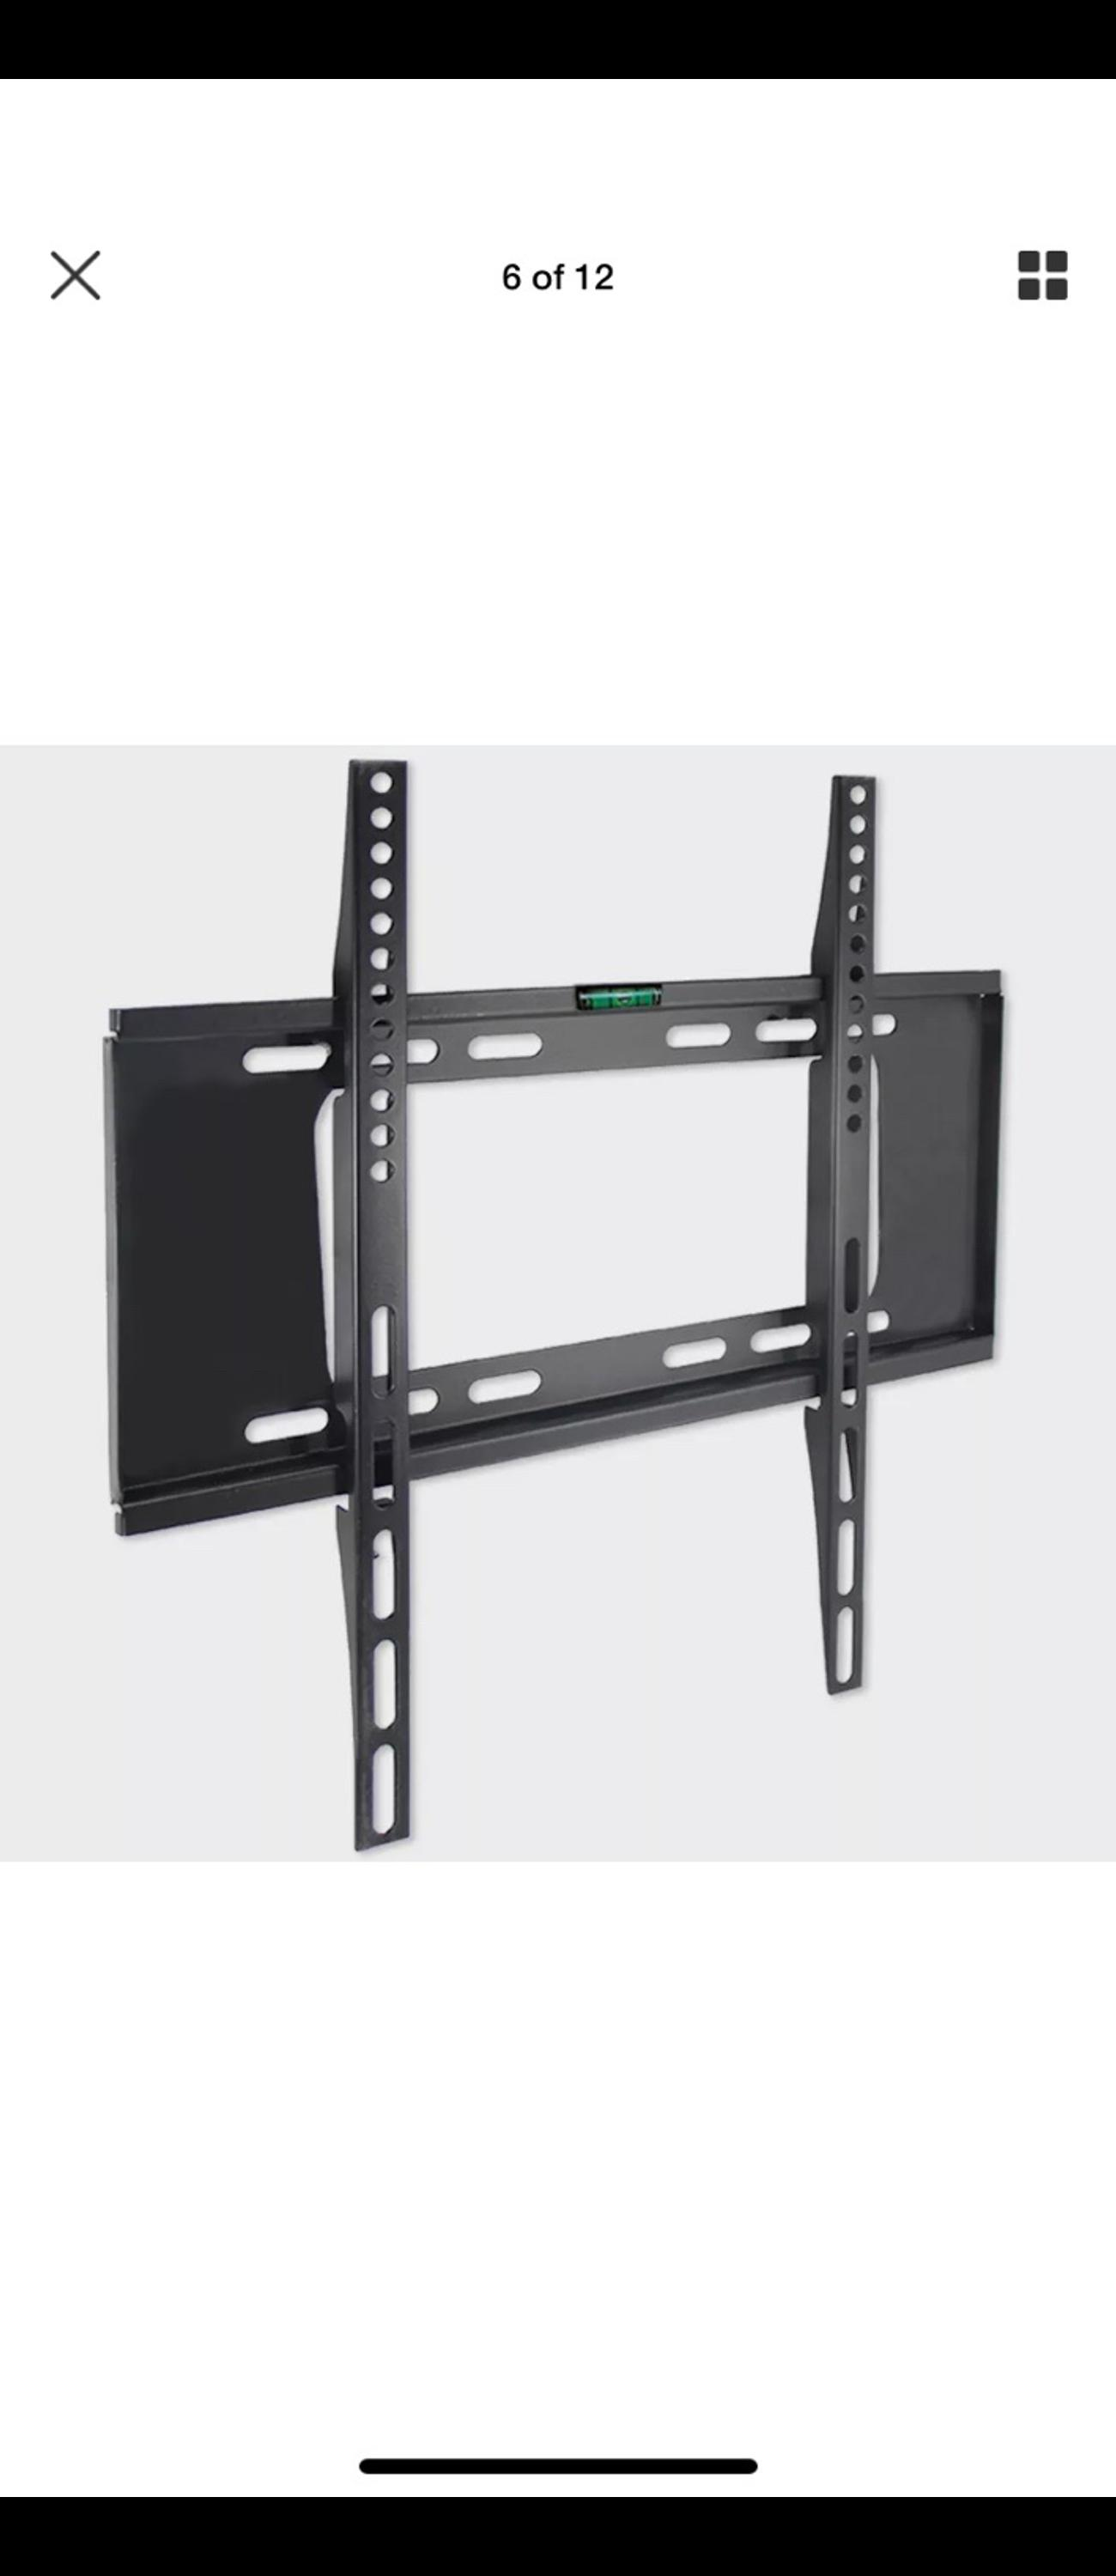 Sony 40 inch tv Everything working Comes with wall mount Comes with remote No problems at all EVERYTHING WORKS  (SMALL CRACK TOP RIGHT, not visible and DOSENT effect tv)  07851016910 further inquiries.